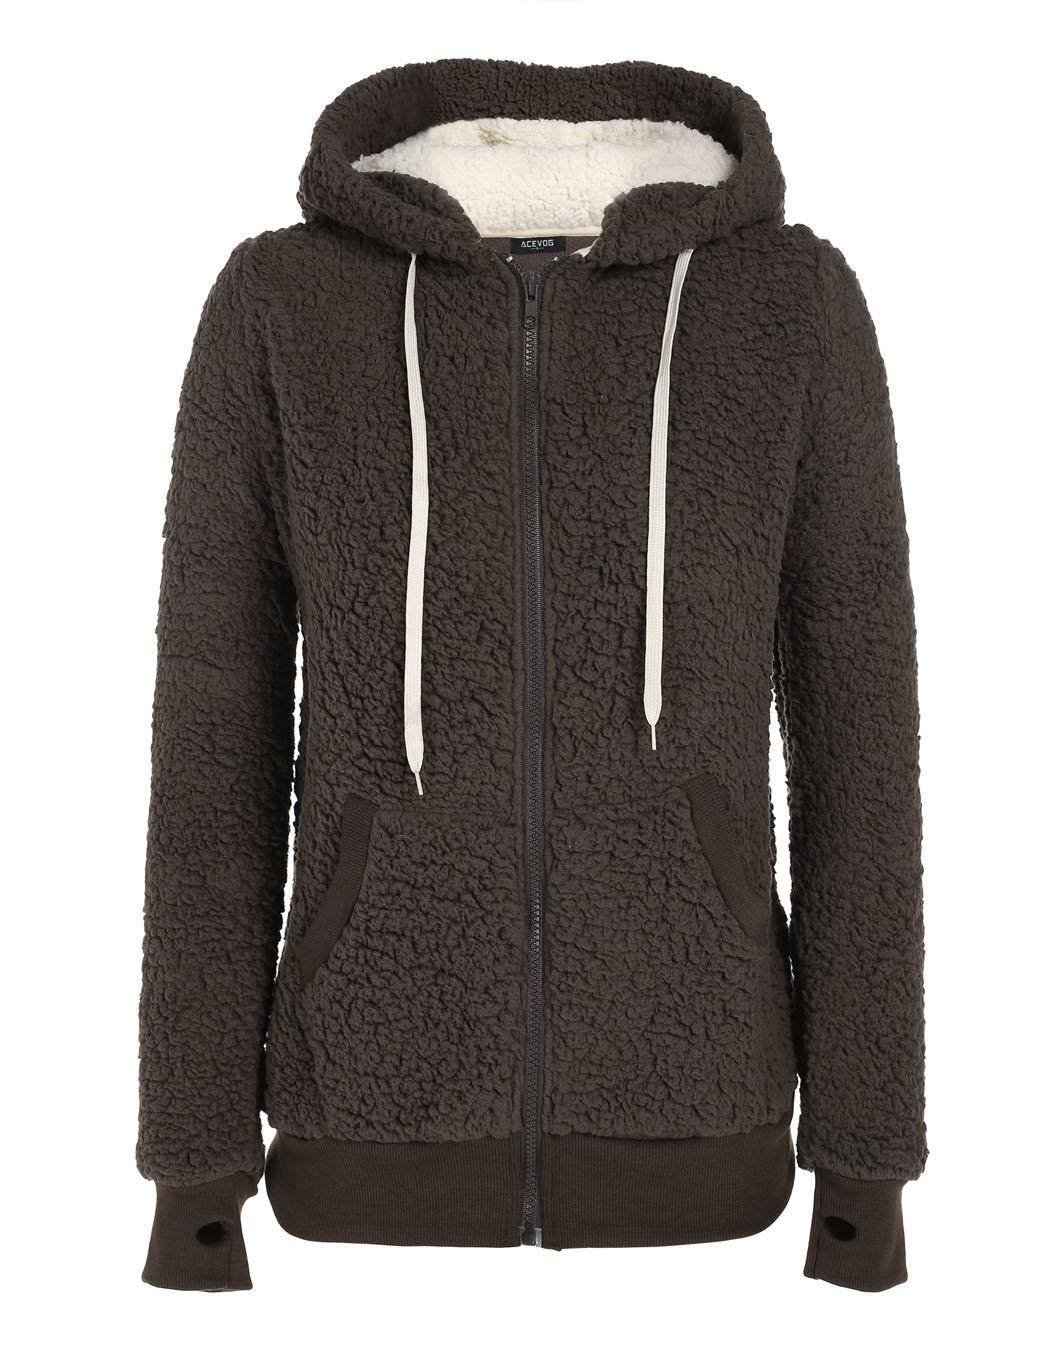 Women Soft Fleece Hooded Jacket Coat 0